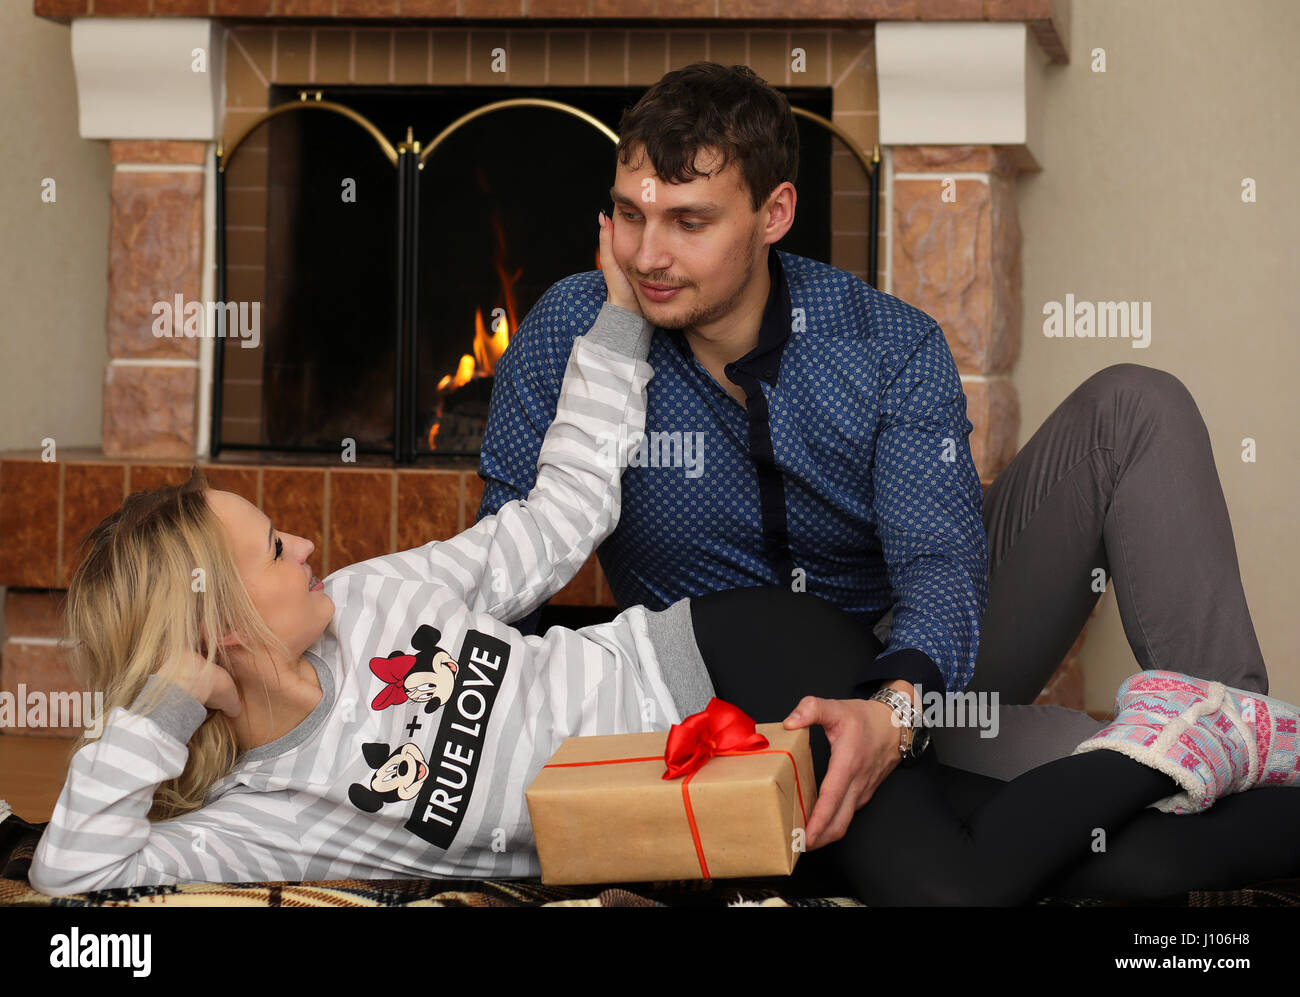 young couple relaxing near the burning fireplace - Stock Image